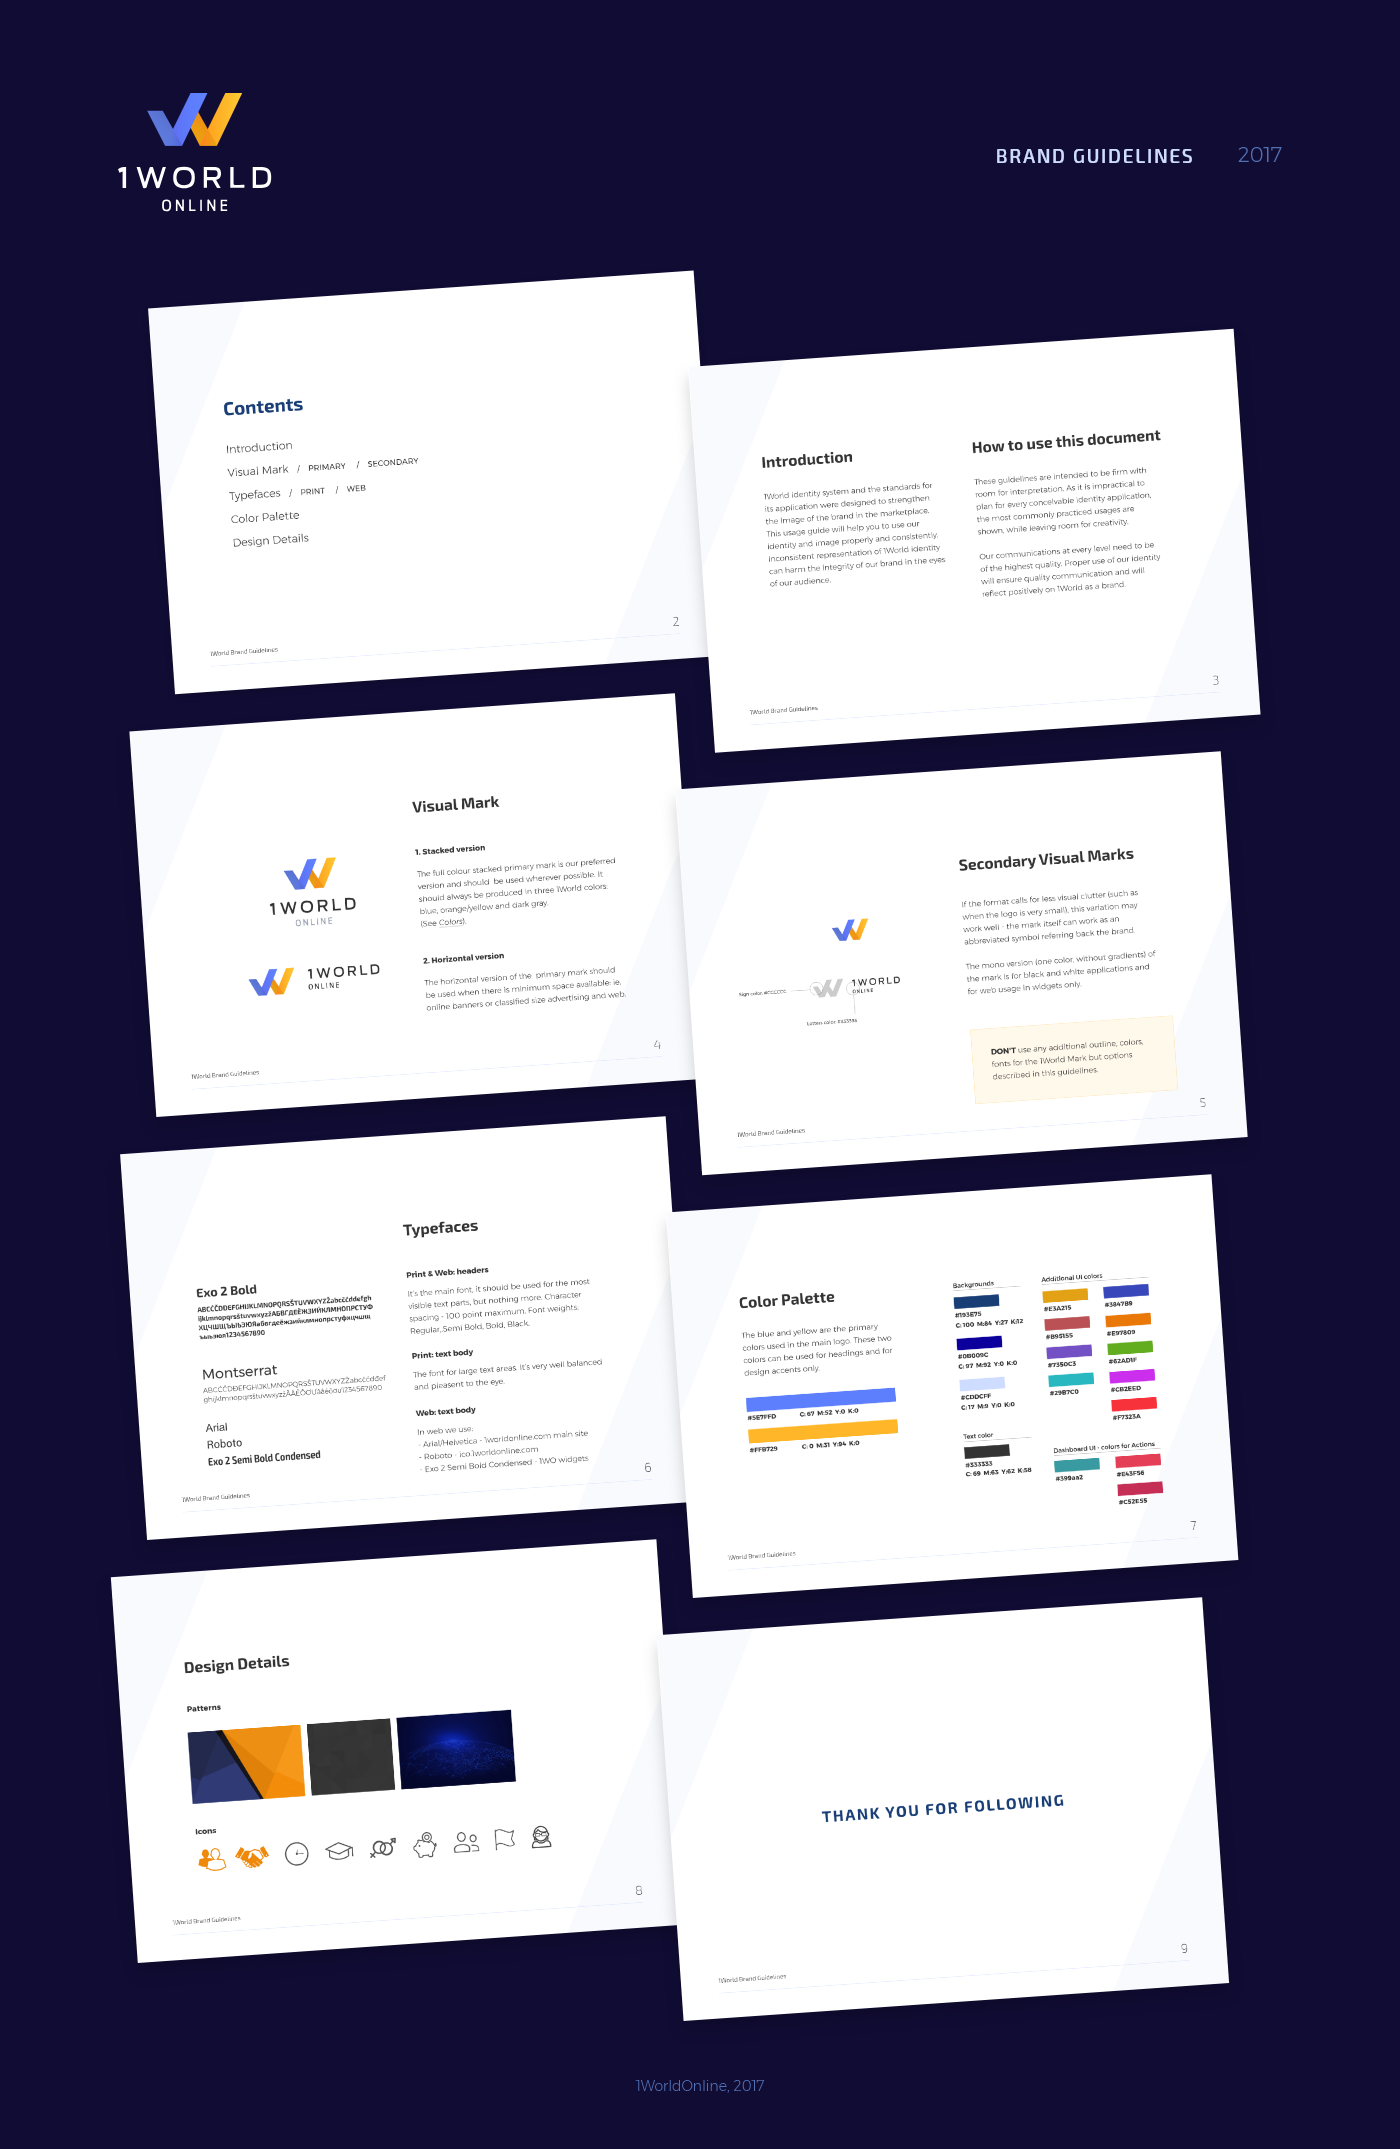 guidelines Website brands Style Guide